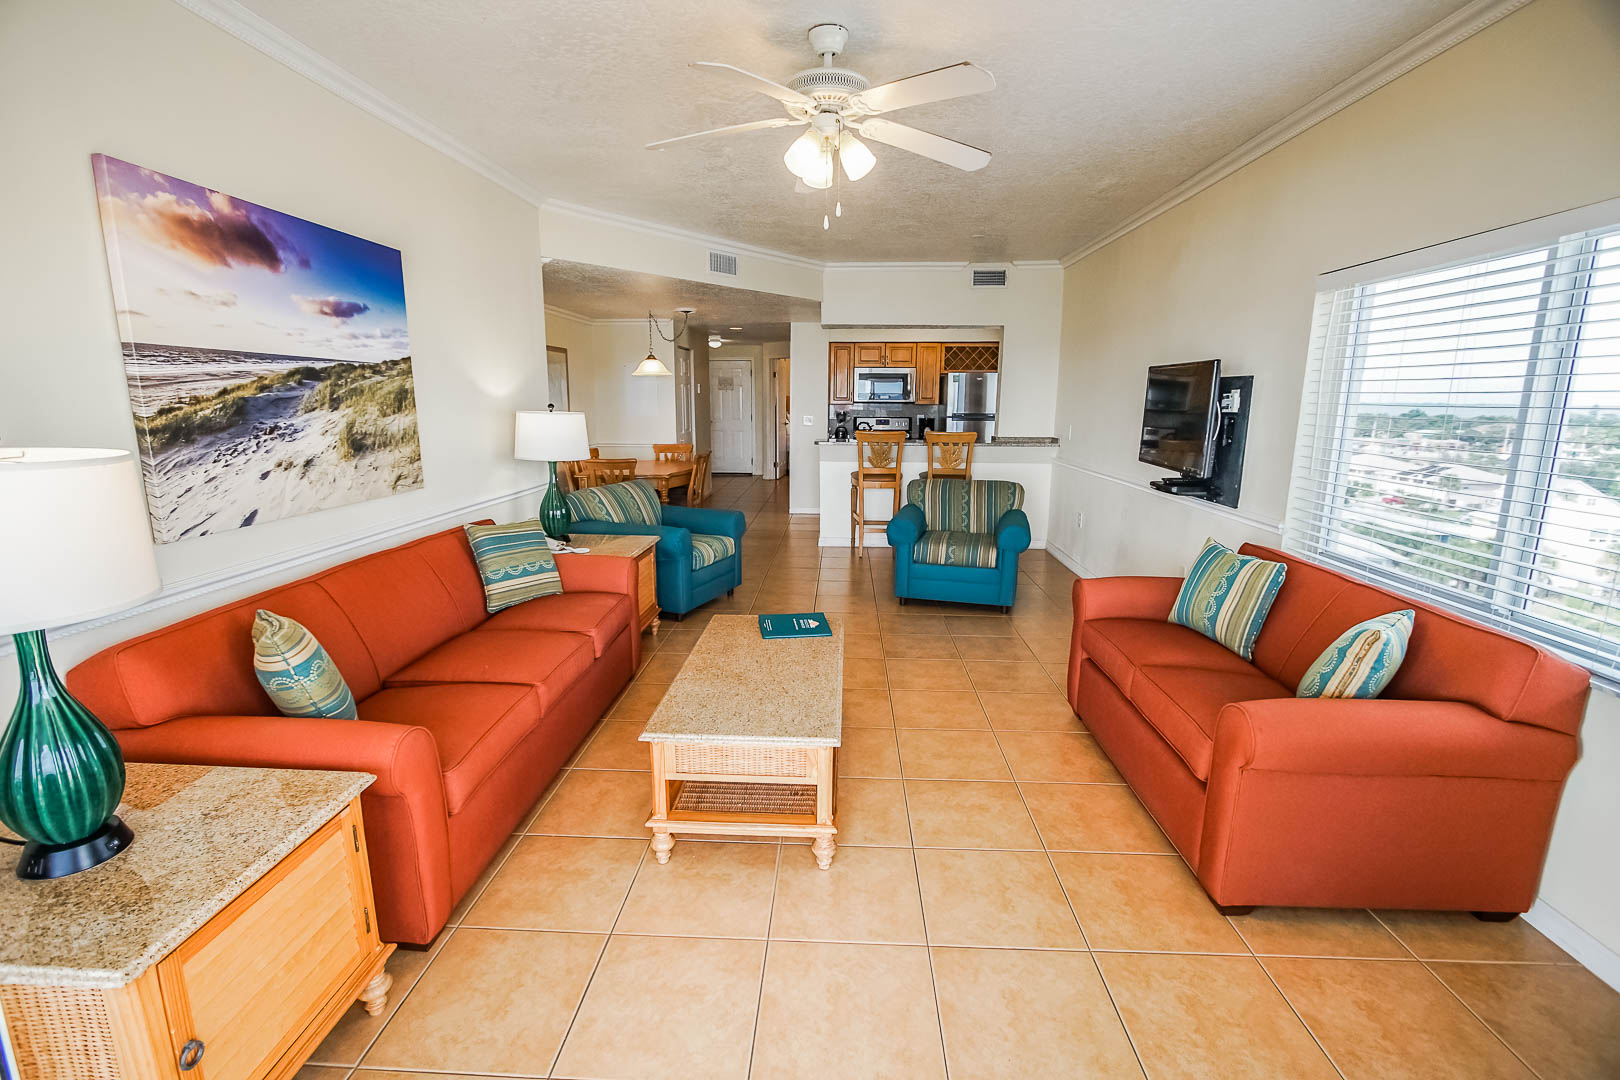 A spacious living room area at VRI's Discovery Beach Resort in Cocoa Beach, Florida.